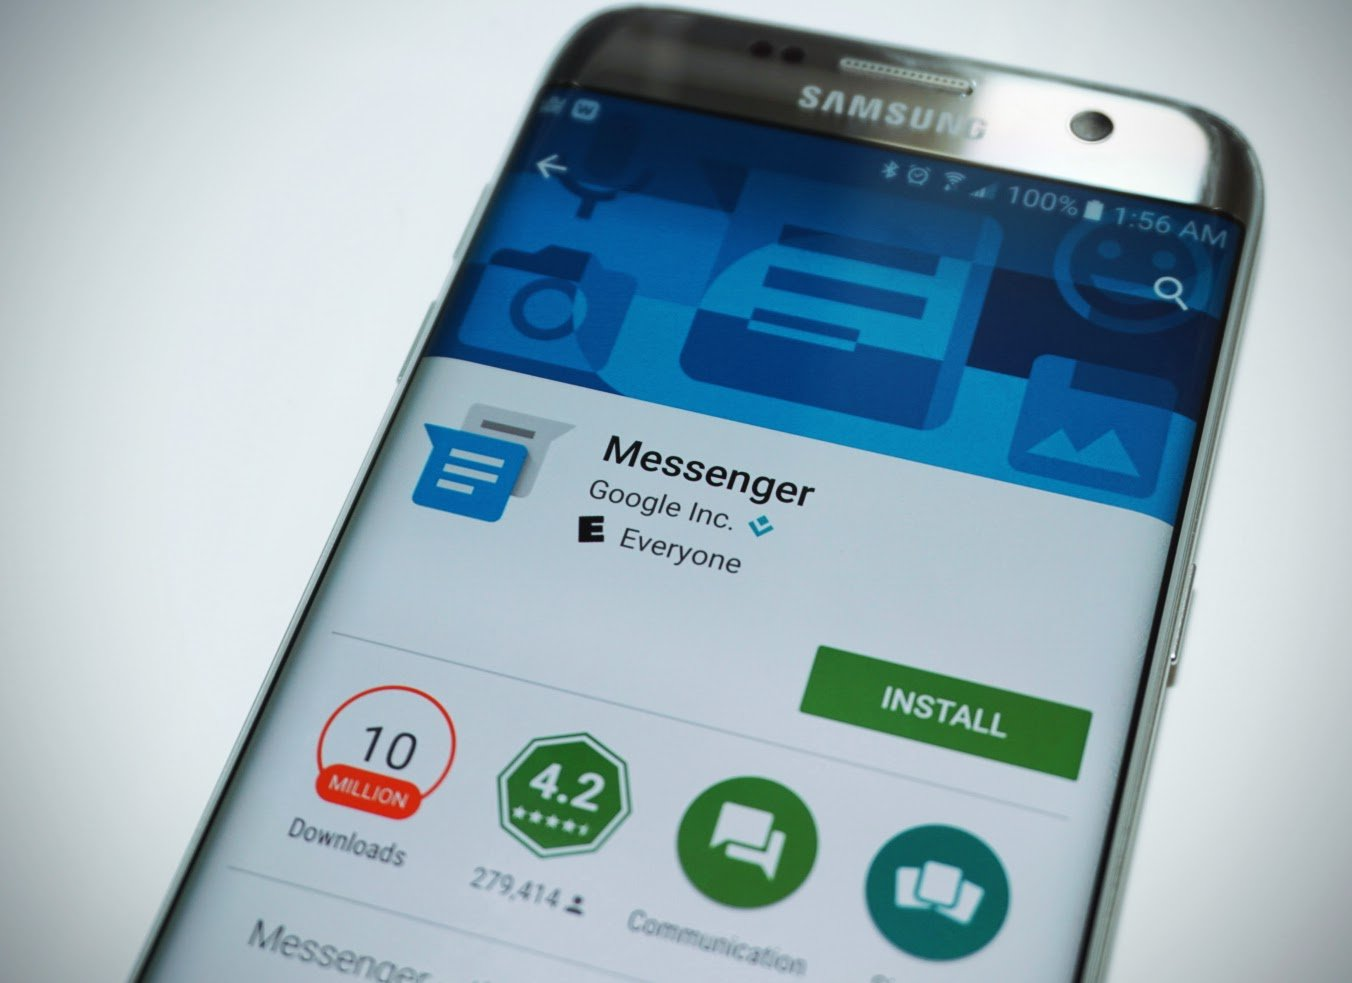 Phone Best Sms App For Android Phones google messenger is the best all around texting app for android can be a bit confusing sometimes with endless possibilities of customization one most areas ap